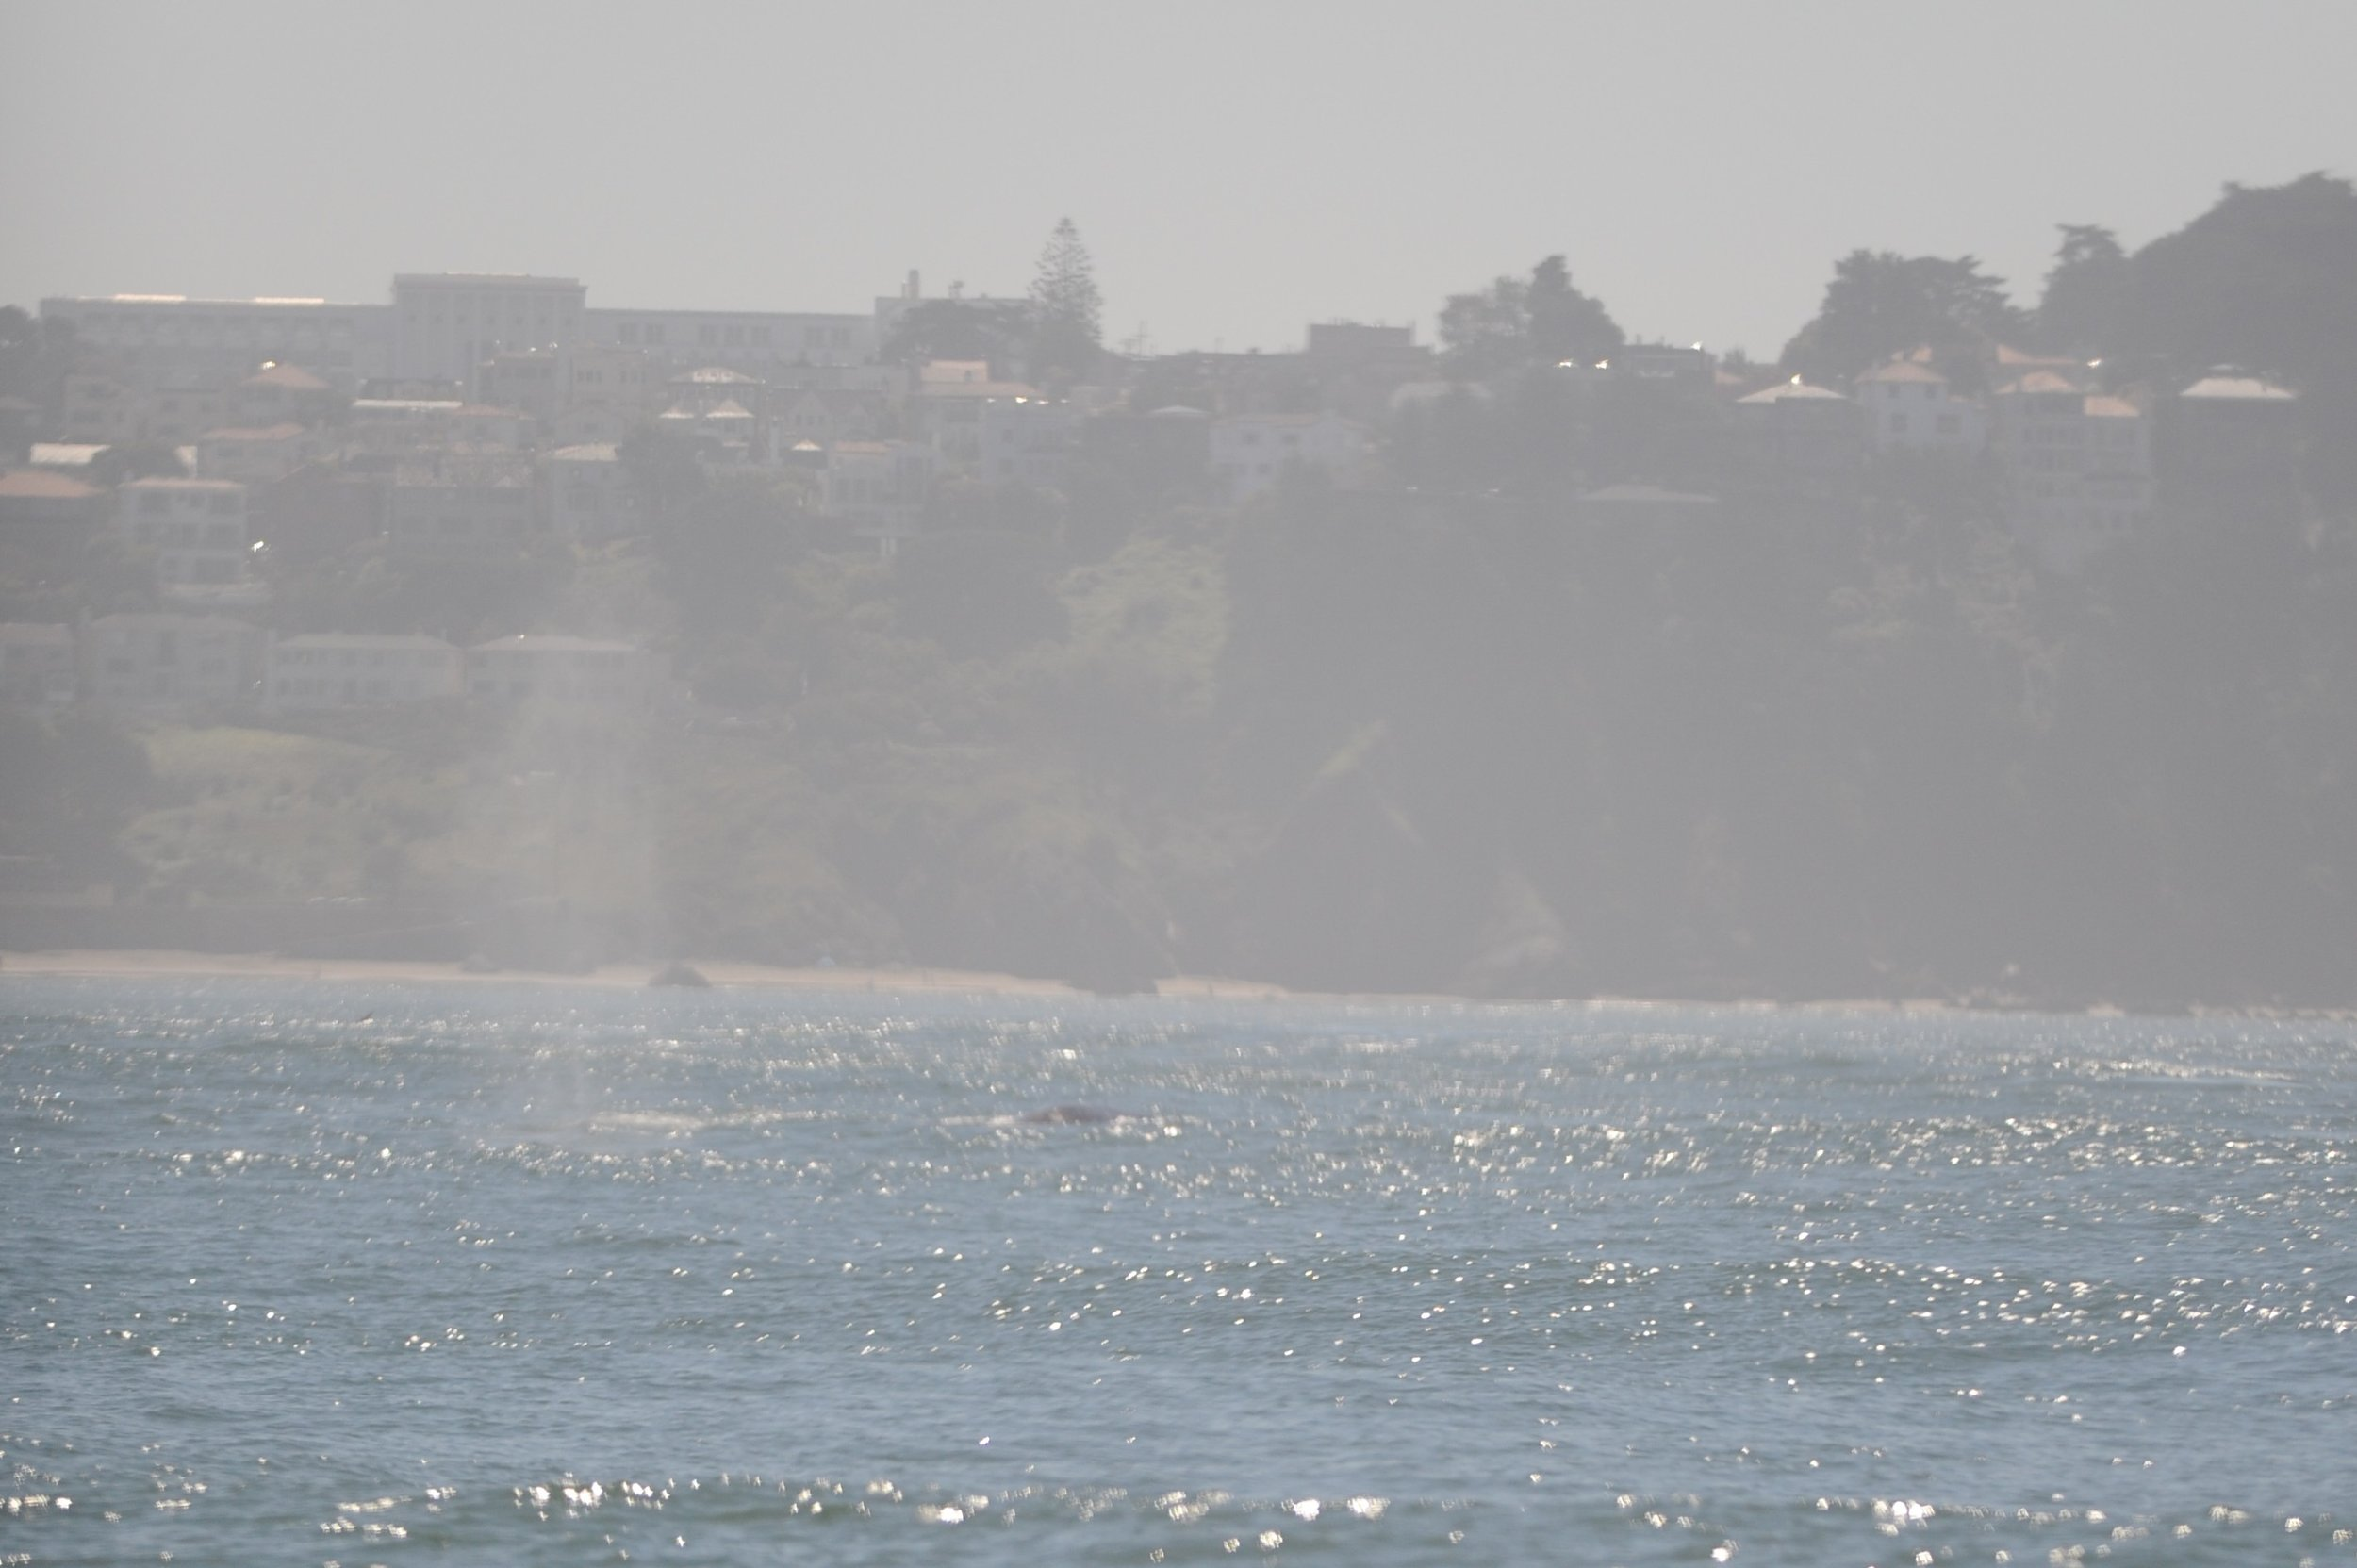 A gray whale spouts from afar.